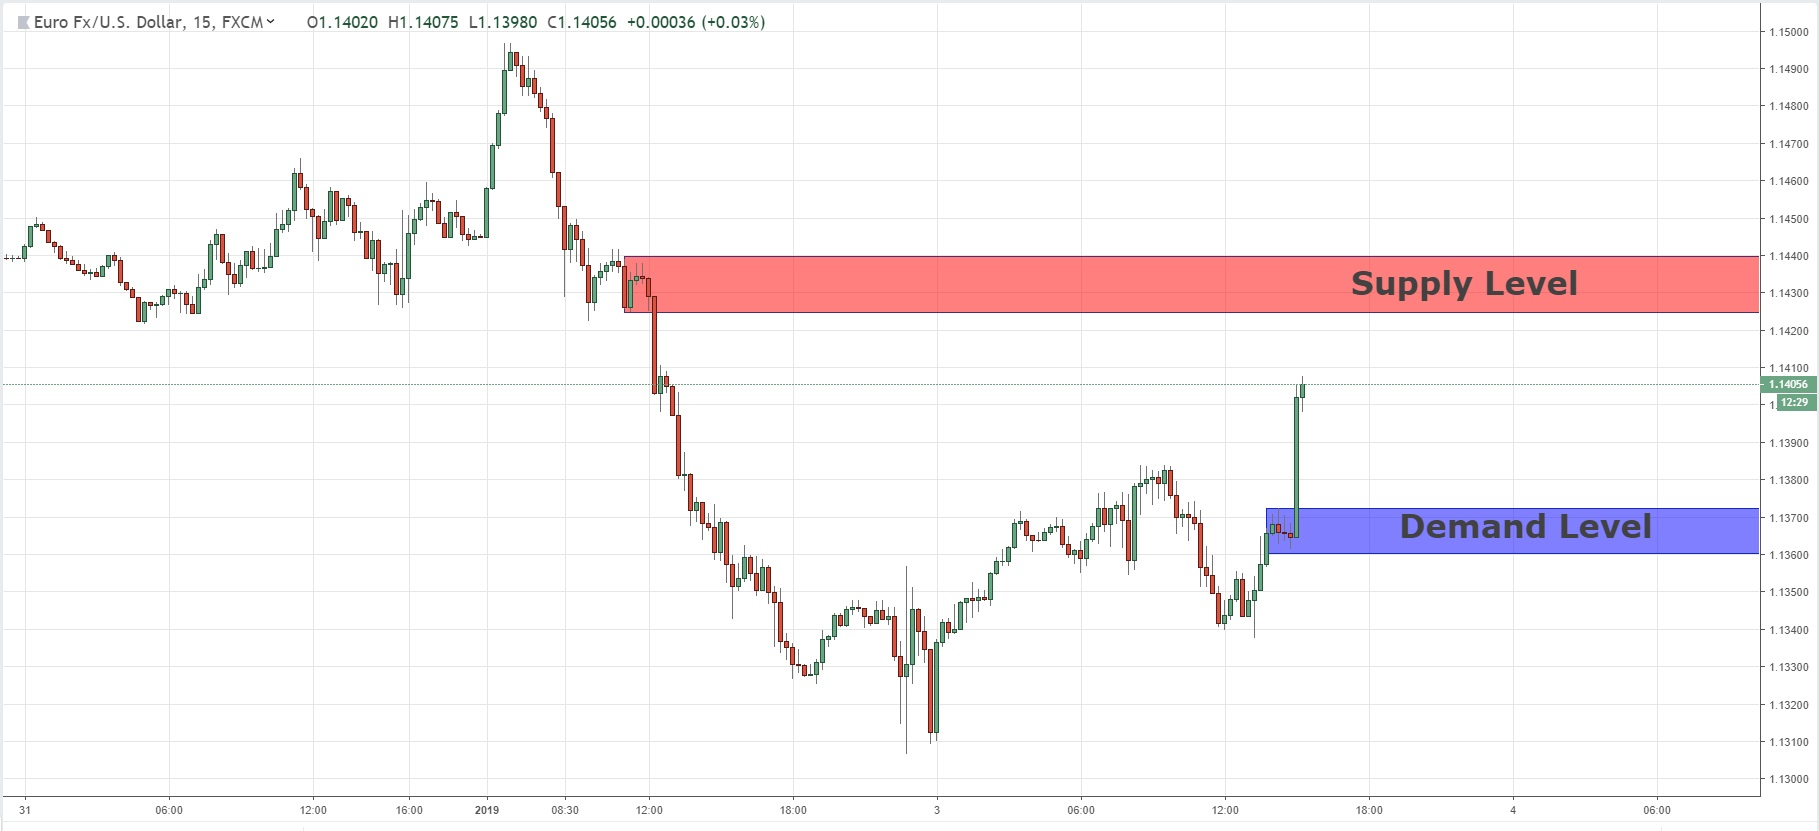 Short Term Key Levels For EURUSD  03/01/2019